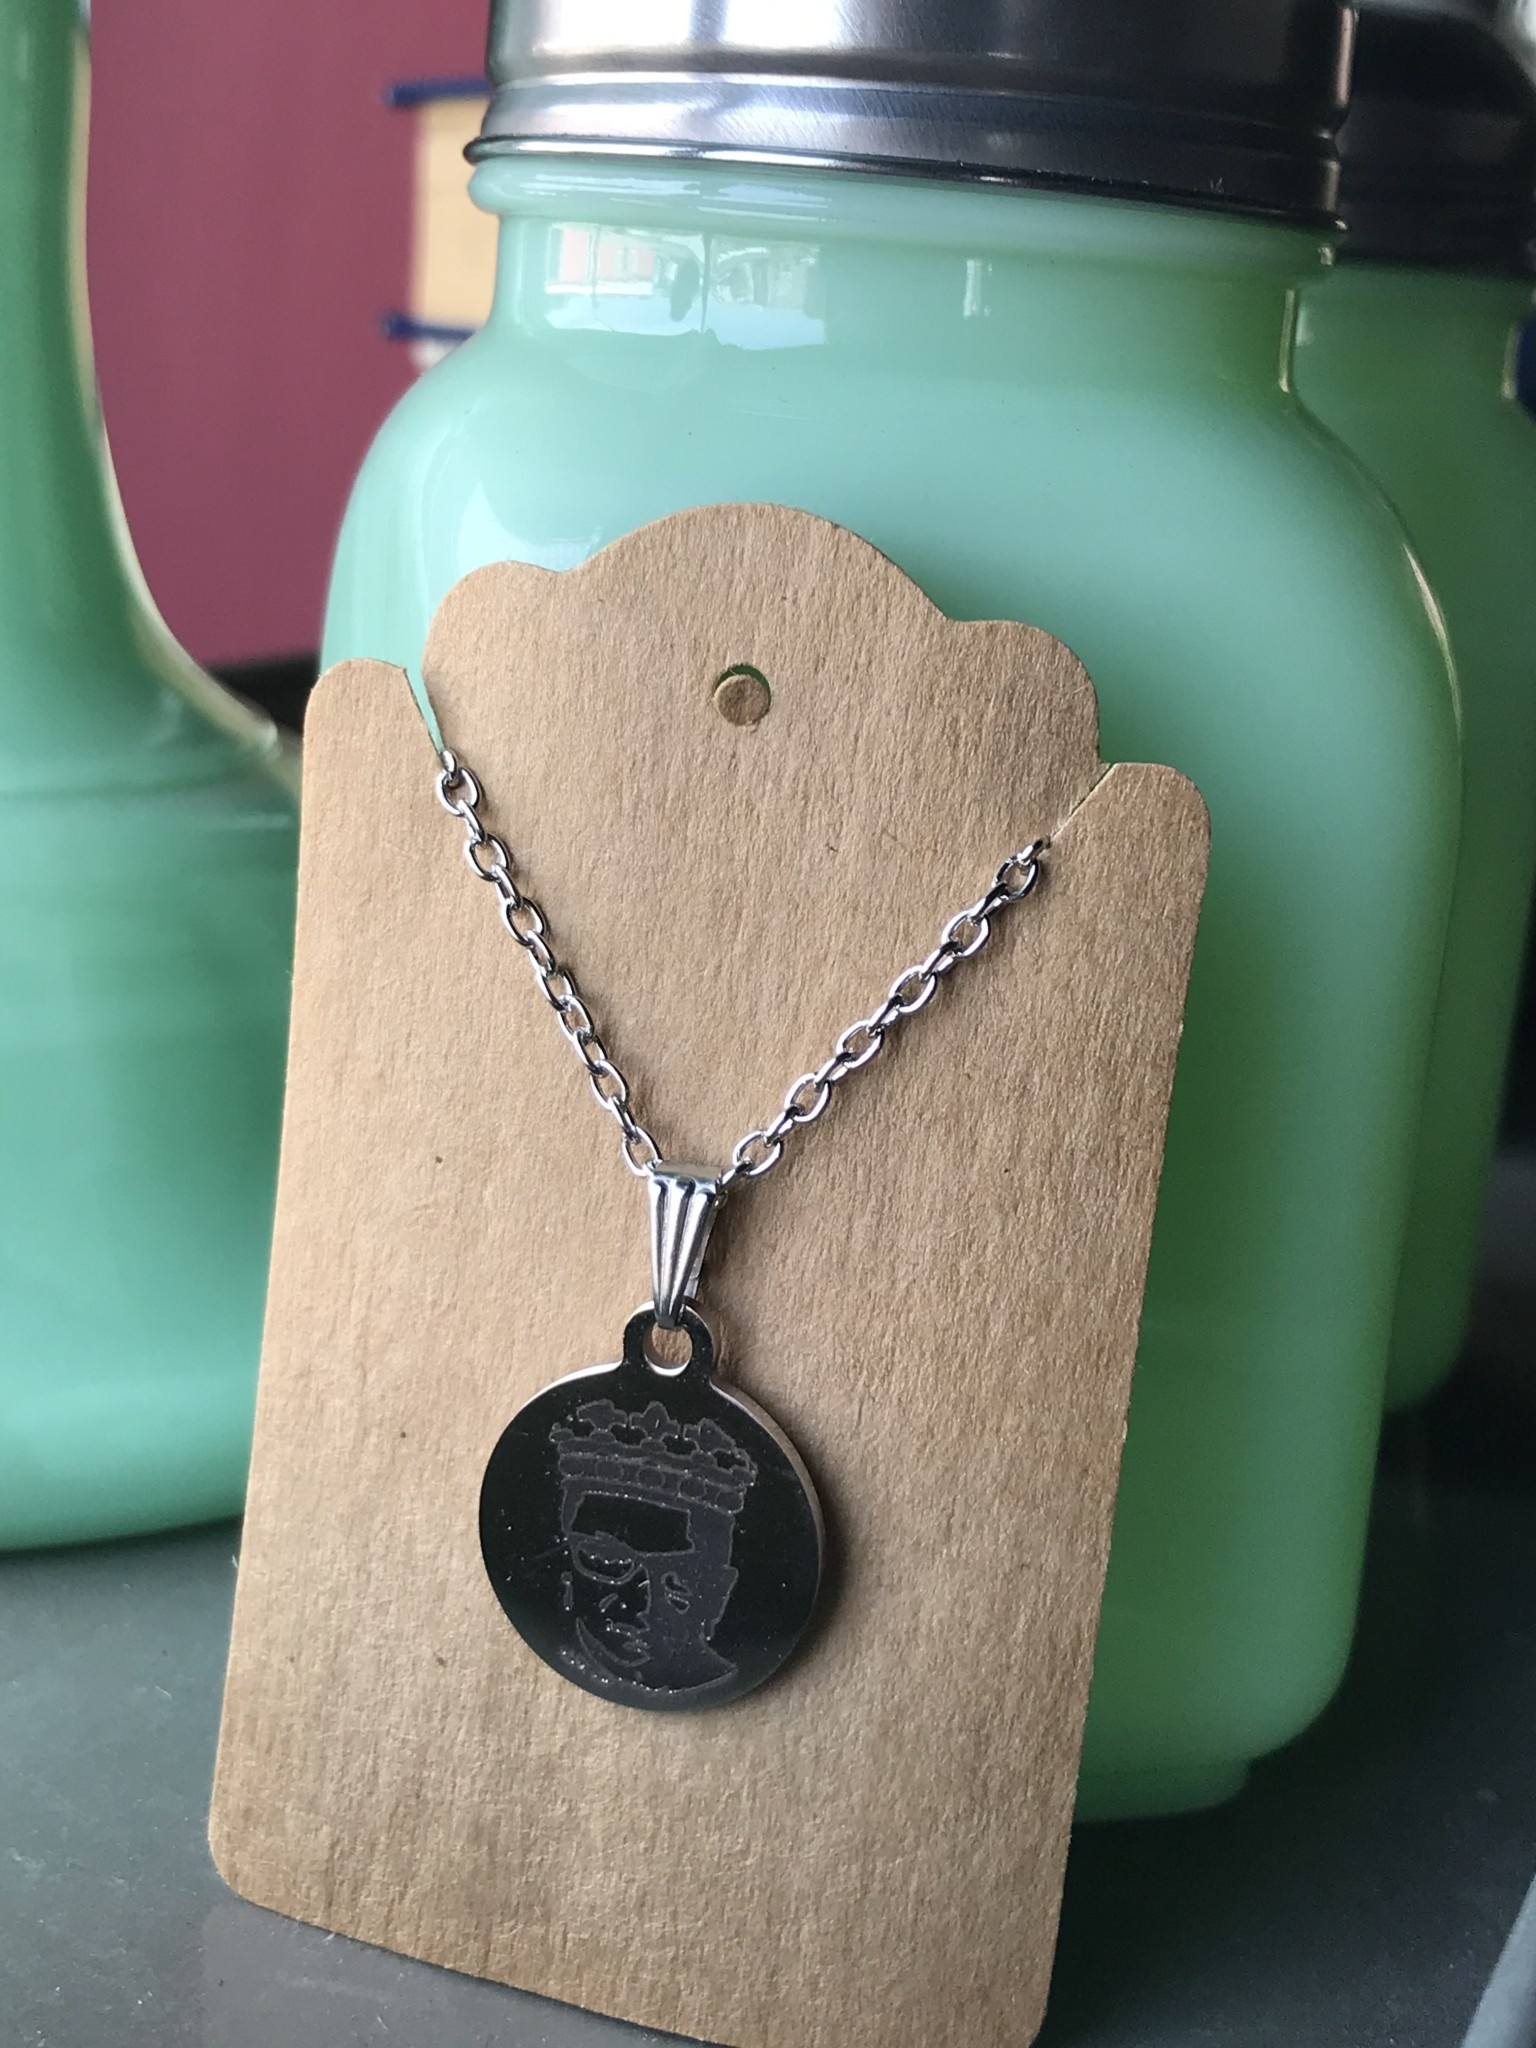 ICTMakers Stainless Steel RBG Necklace